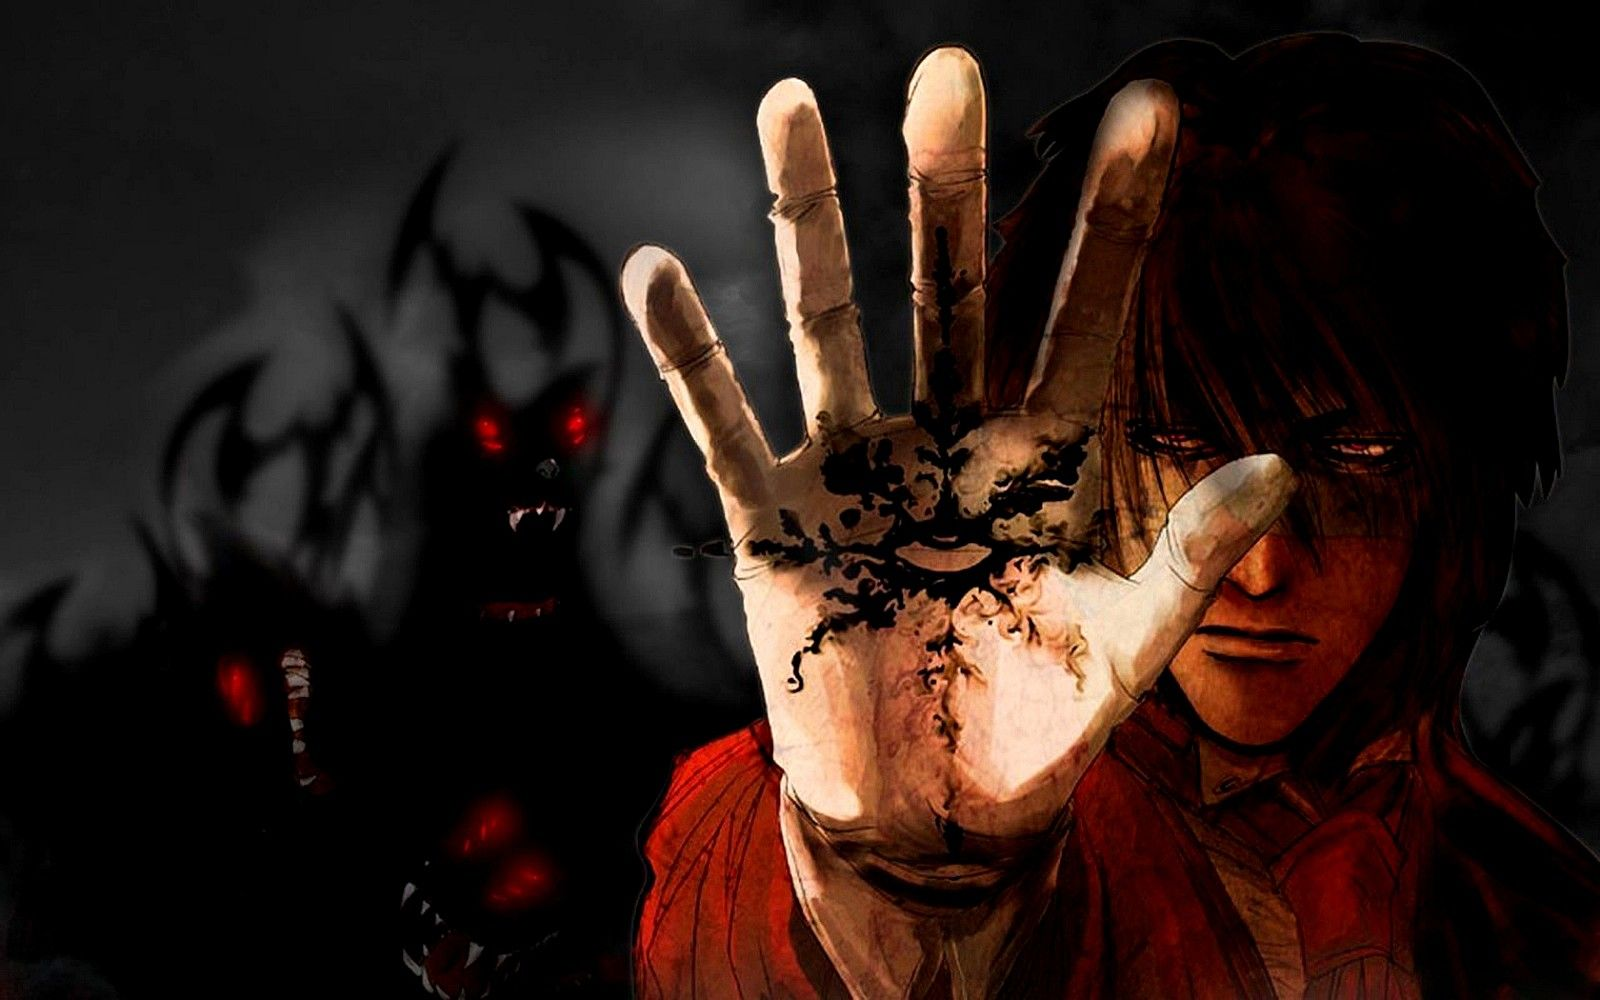 Horror Anime HD Horror Anime Wallpaper Manga Wallpaper